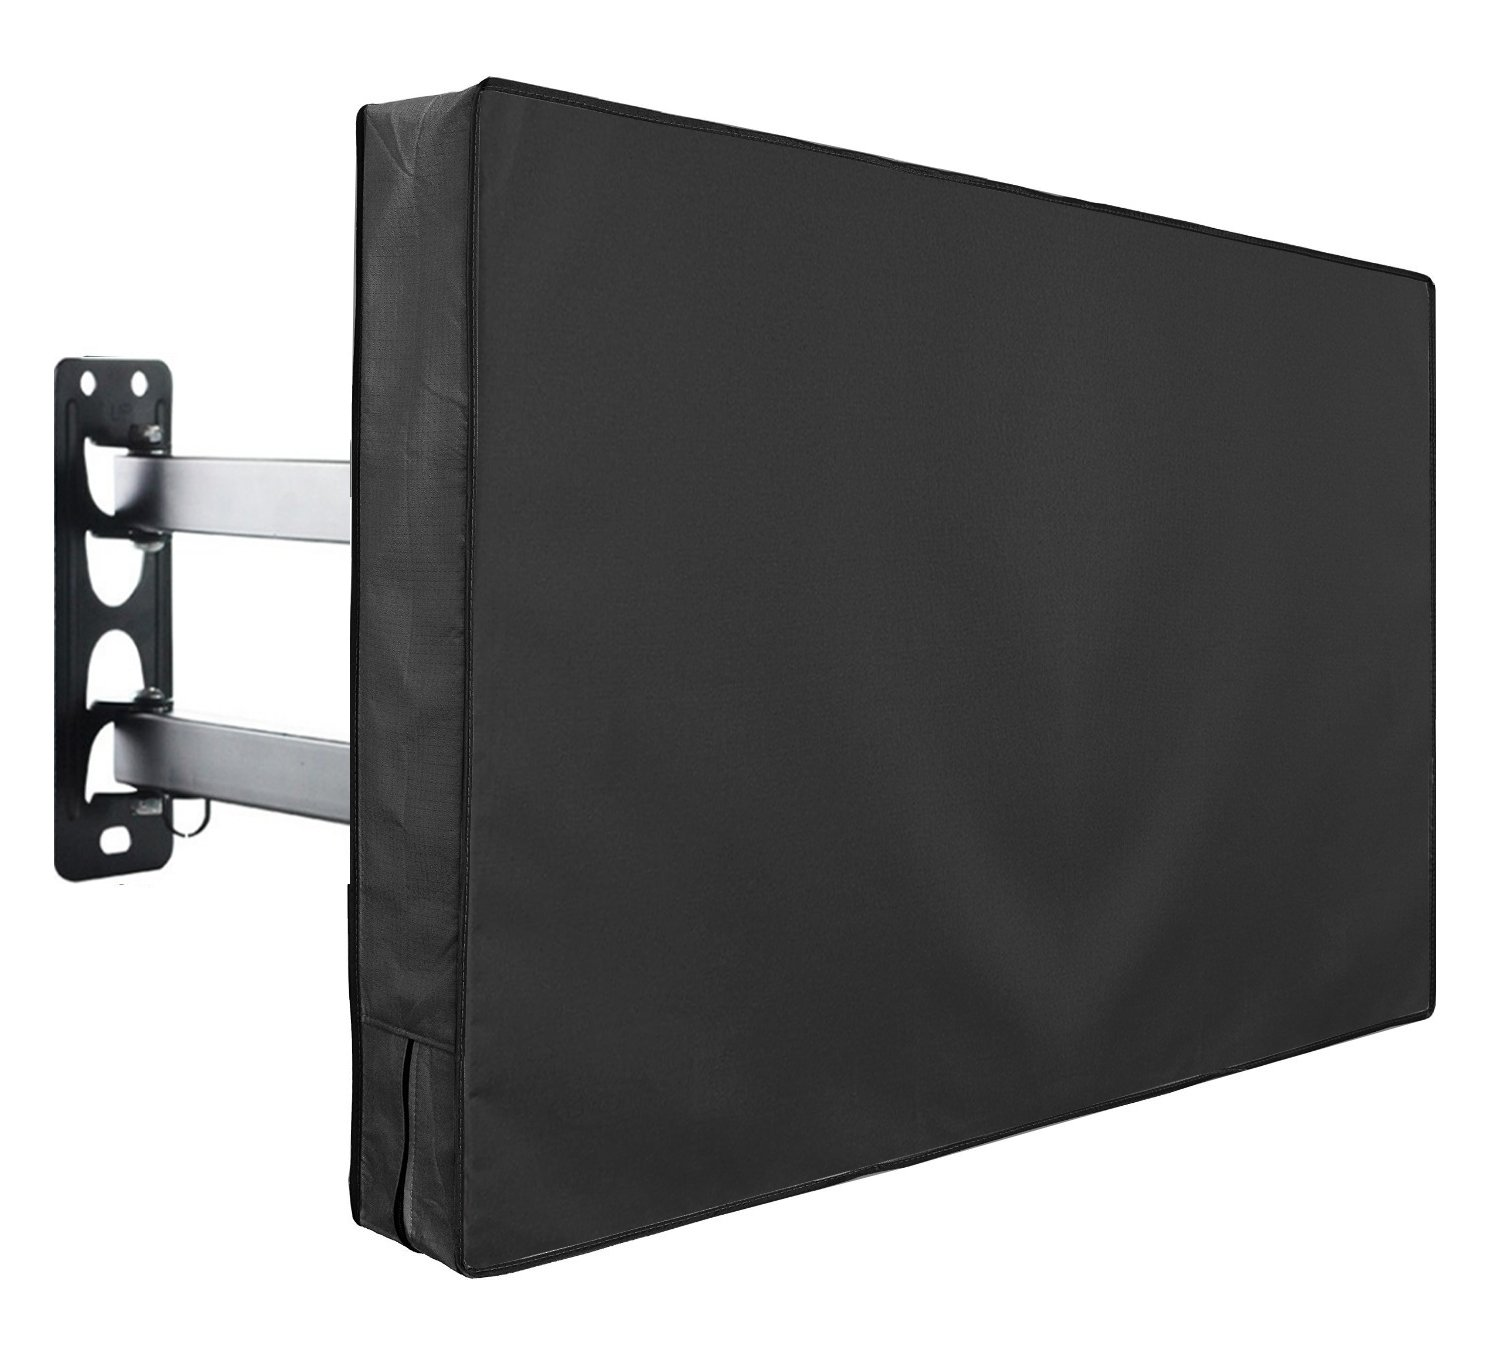 Outdoor TV Cover Fits 30'' - 32'' TV - Water and Dust Resistant - with Remote Control Storage Pocket by YYST